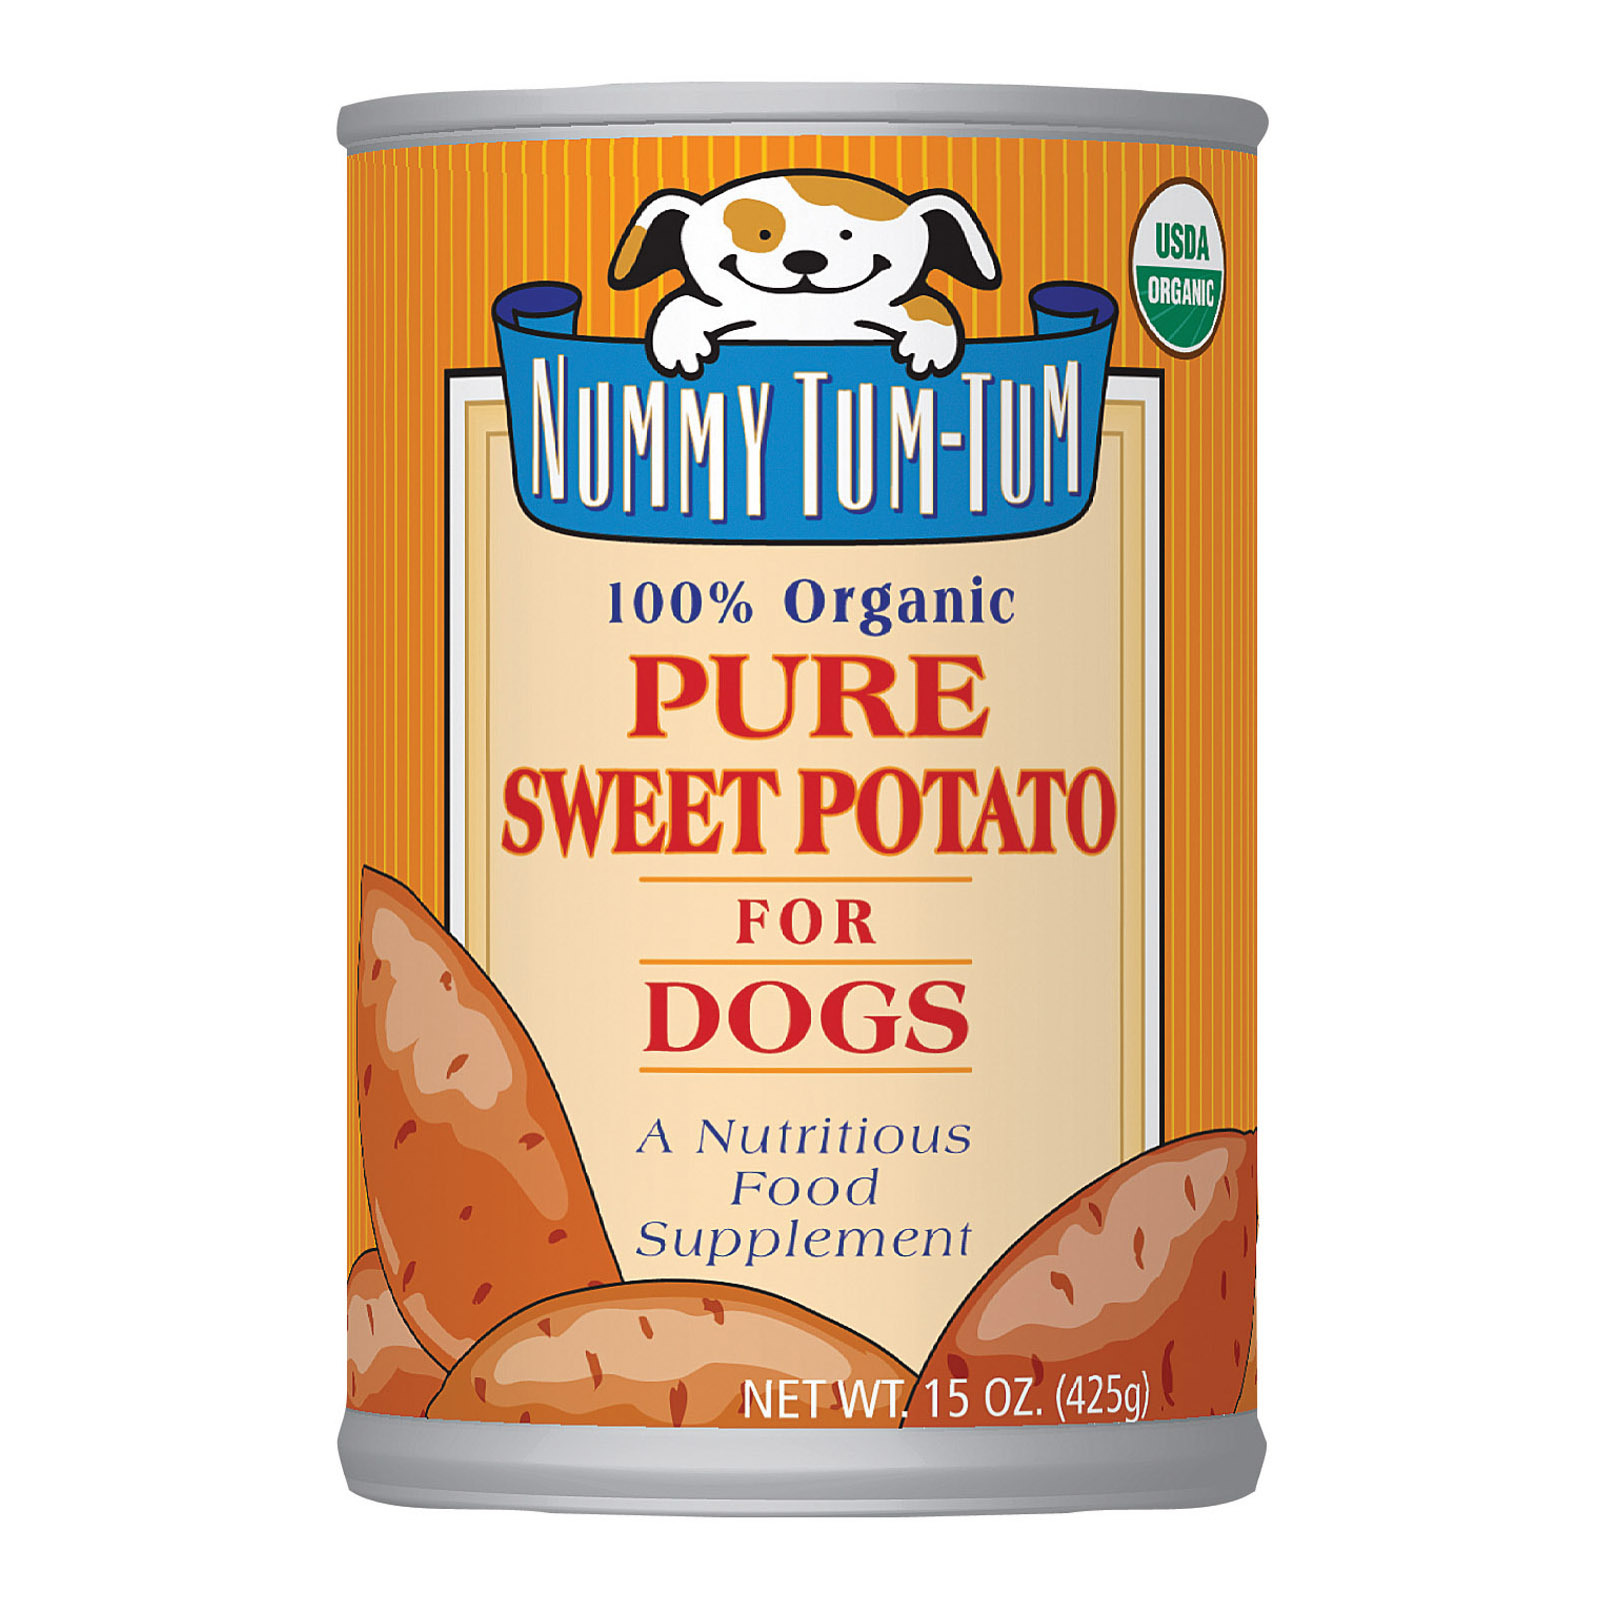 Nummy Tum-Tum Pure Sweet Potato - Organic - Case of 12 - 15 oz.